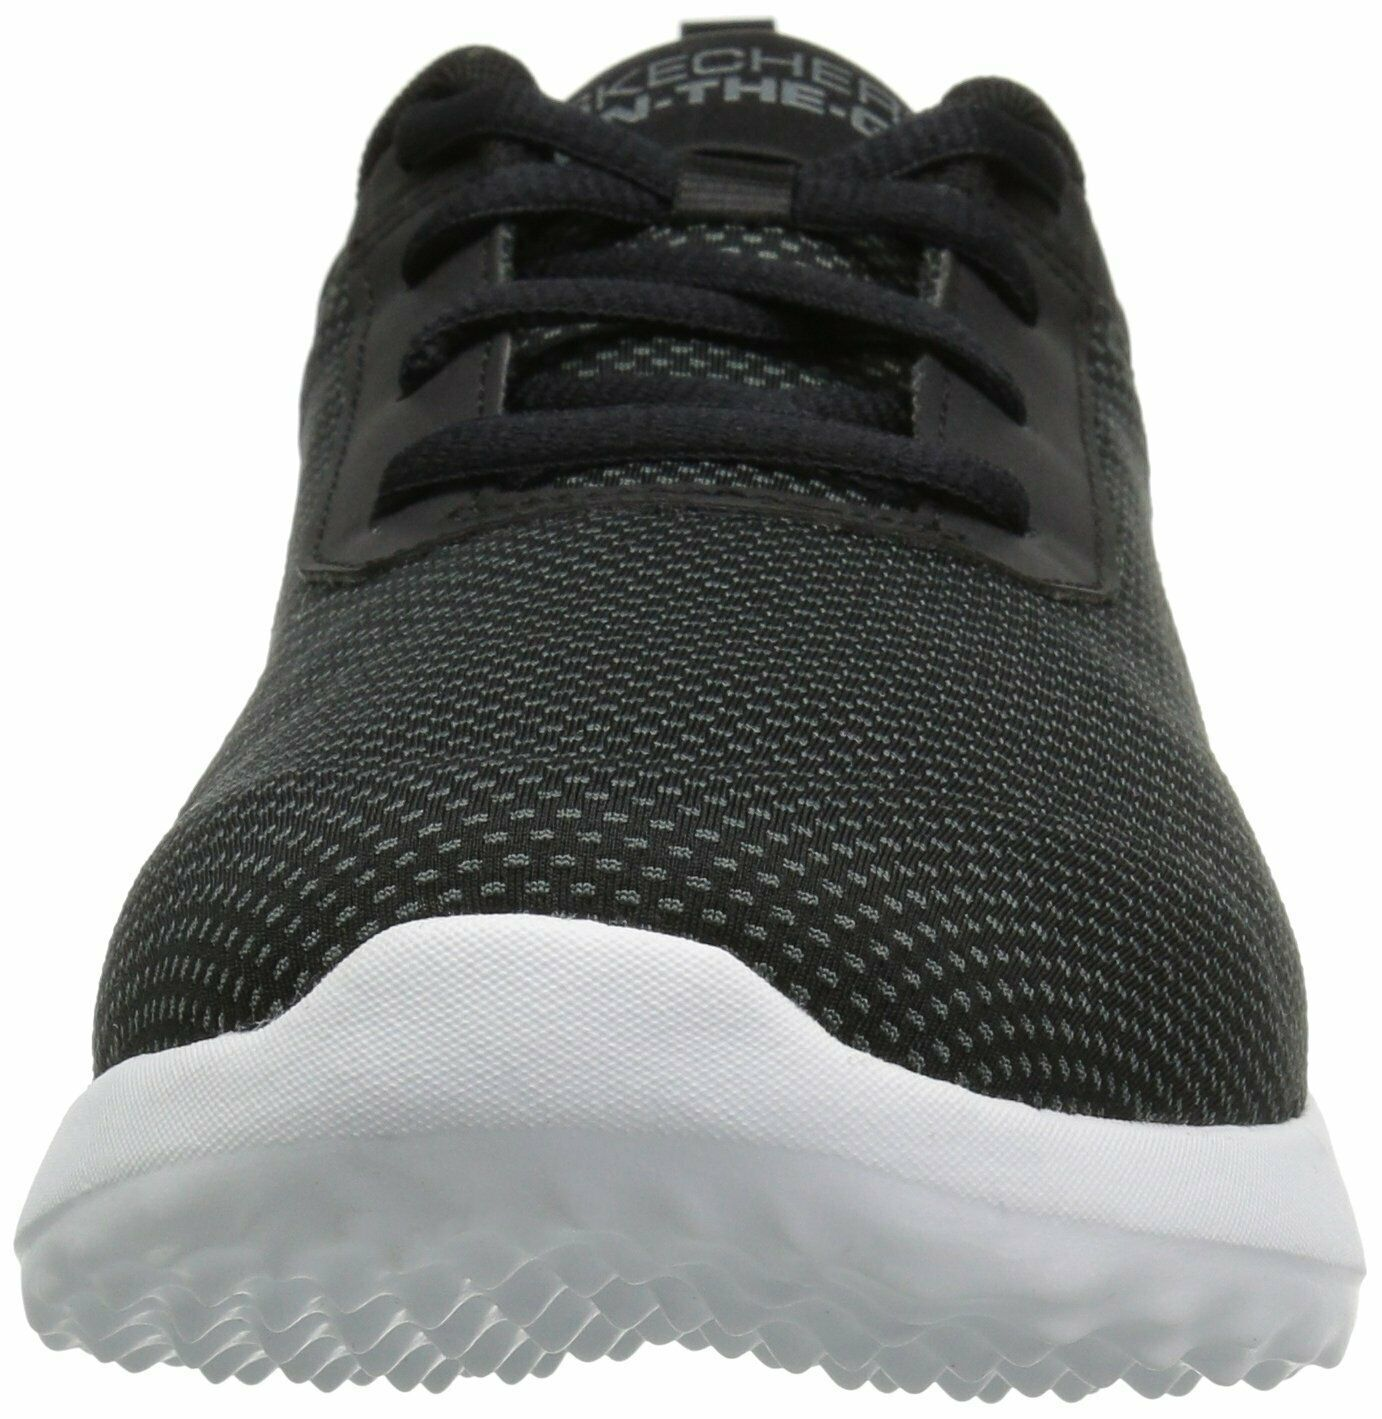 Skechers Women's On-The- On-The-go City 3.0 - Brilliance Sneaker 9 Black/White